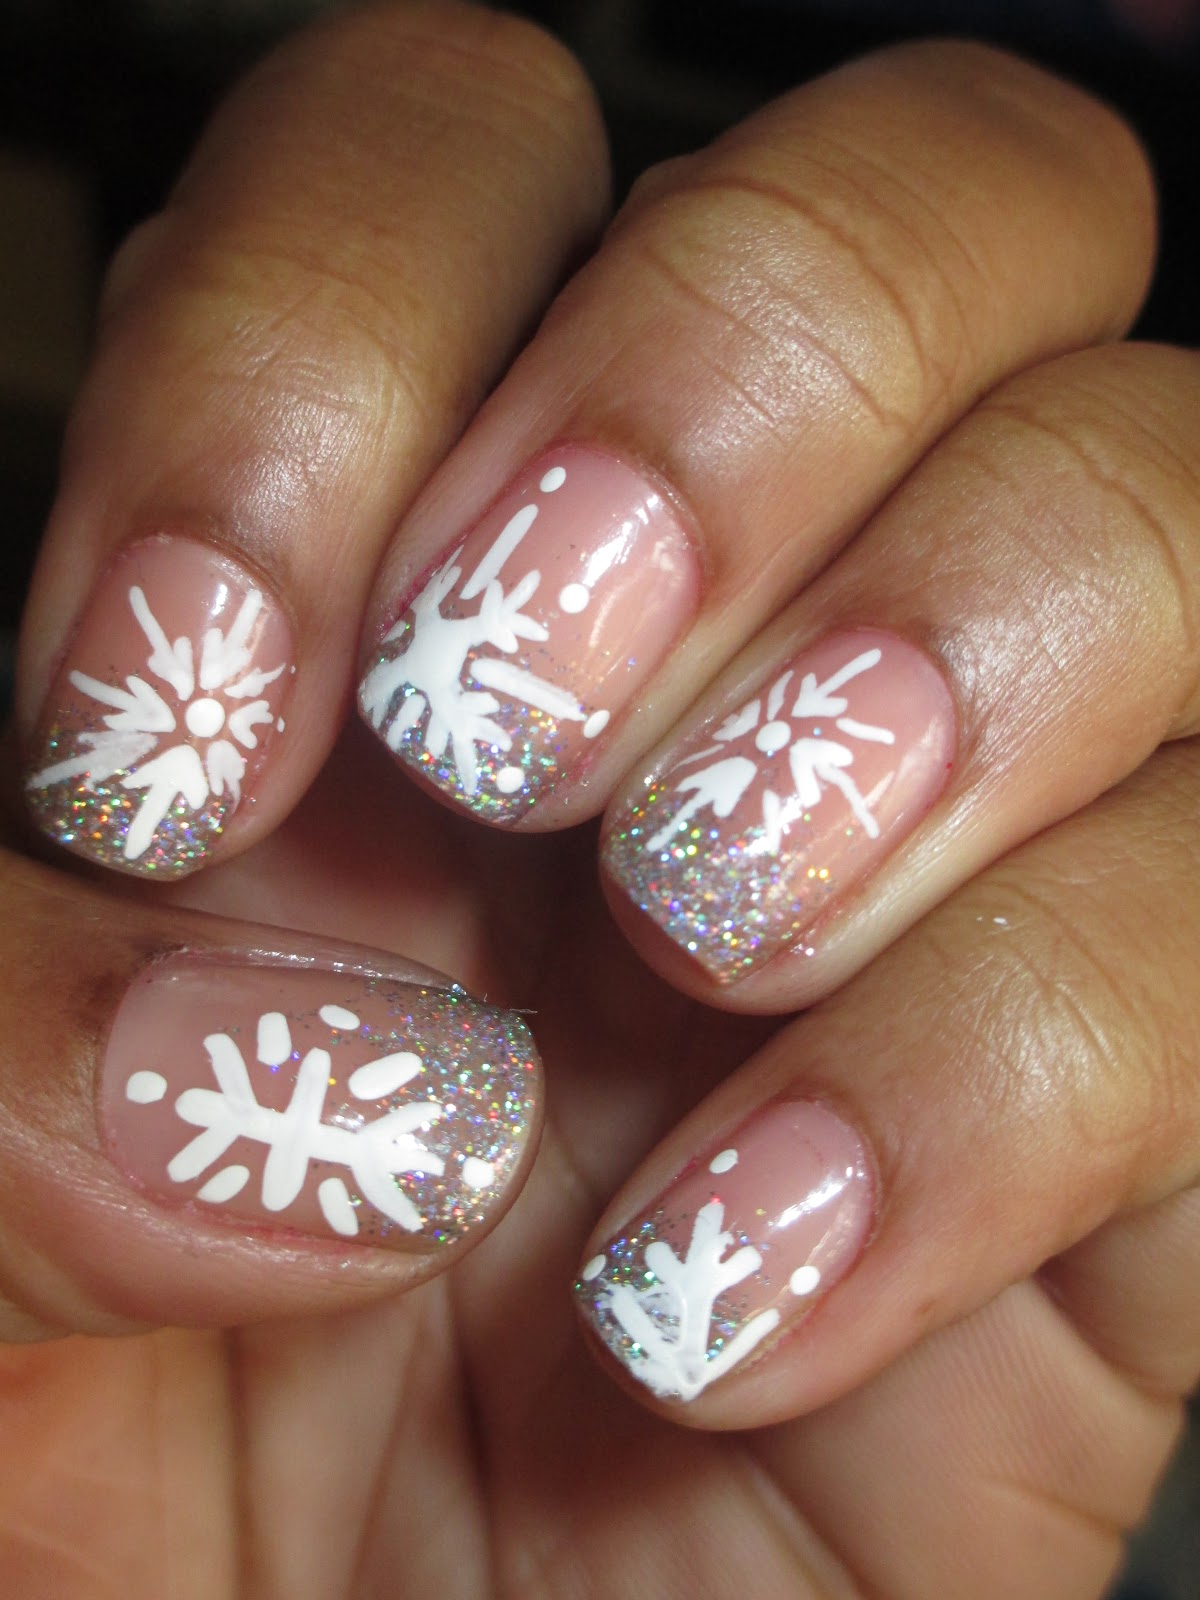 The Astounding Simple holiday nail designs gold Digital Imagery